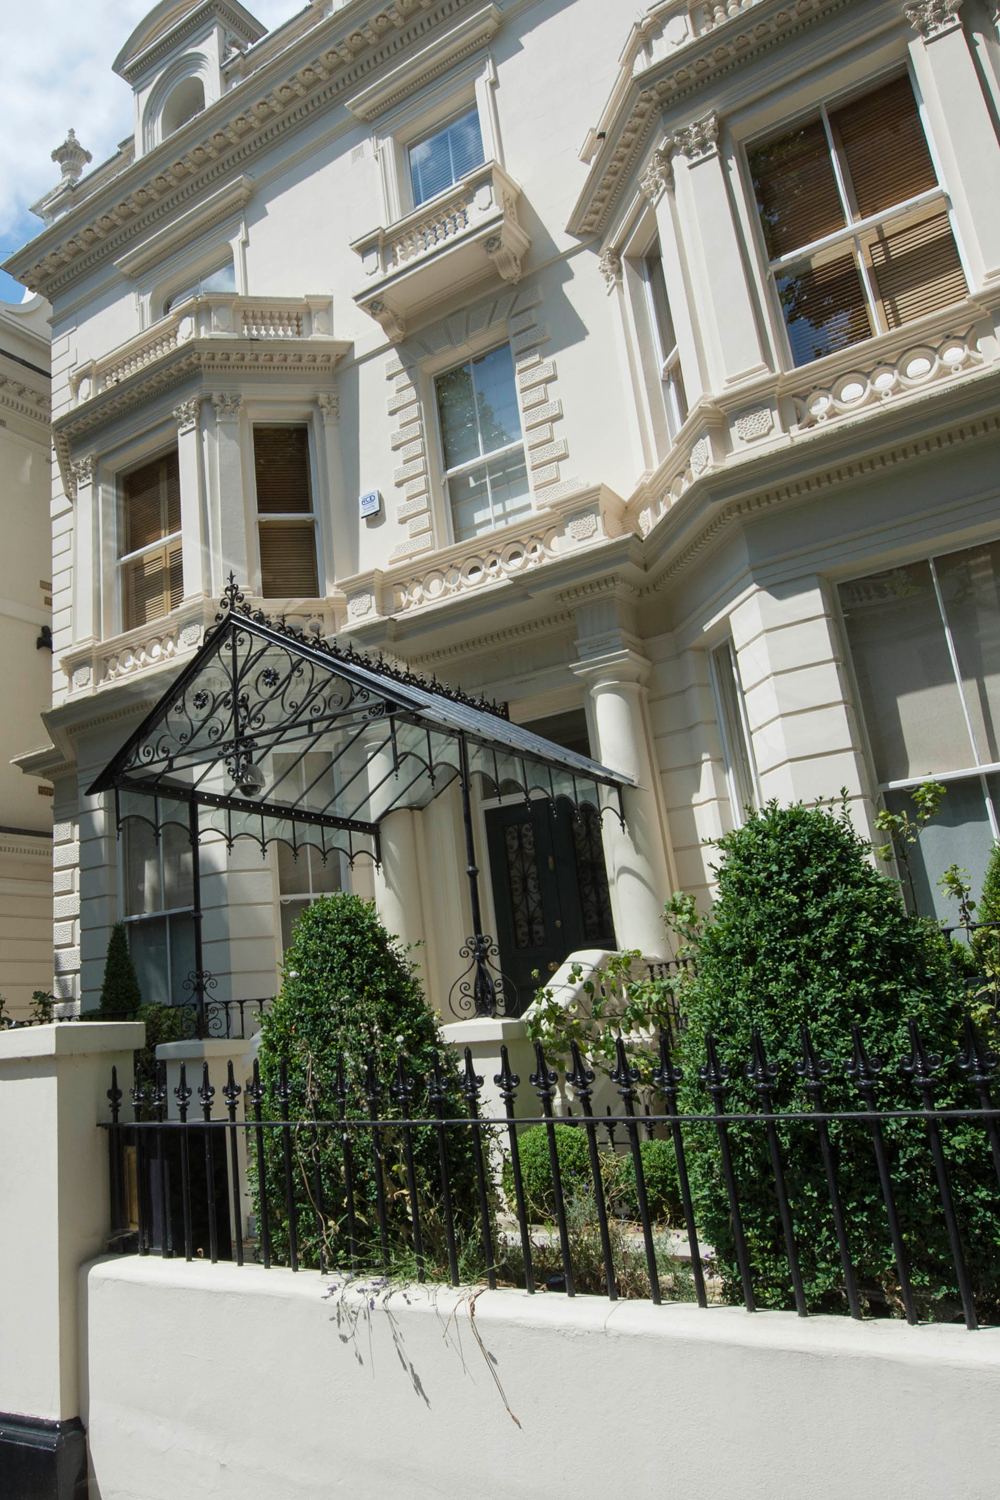 David And Victoria Beckham S 163 32m House Is More Incredible